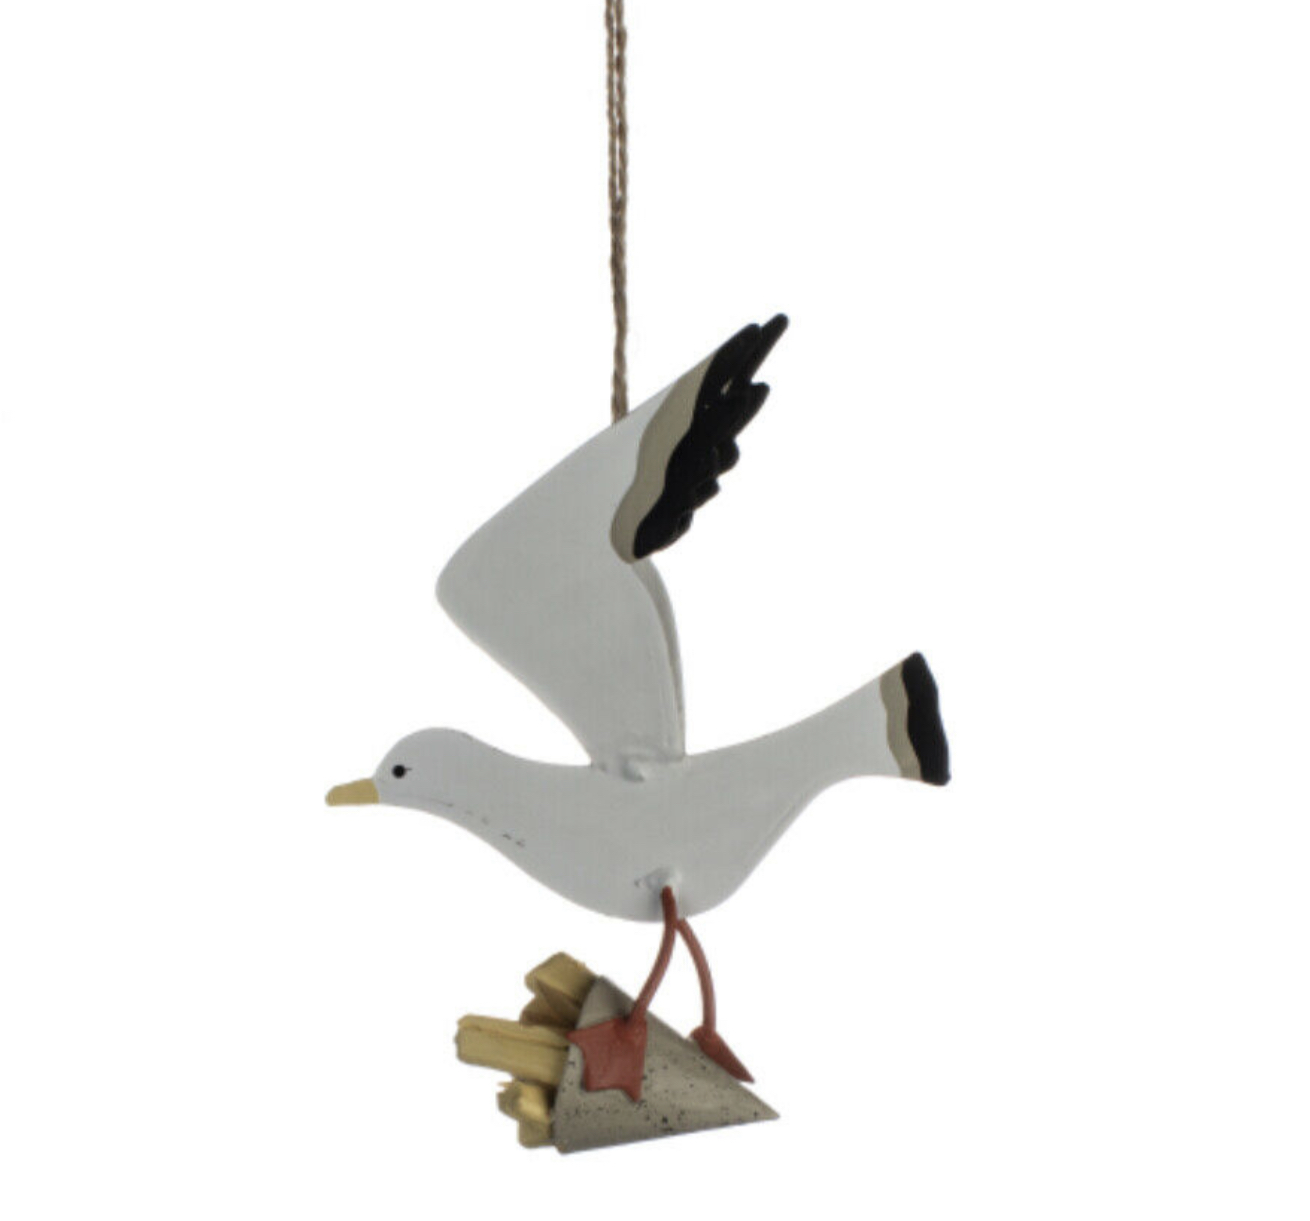 Chips for supper seagull steals chips hanging decoration by shoeless joe